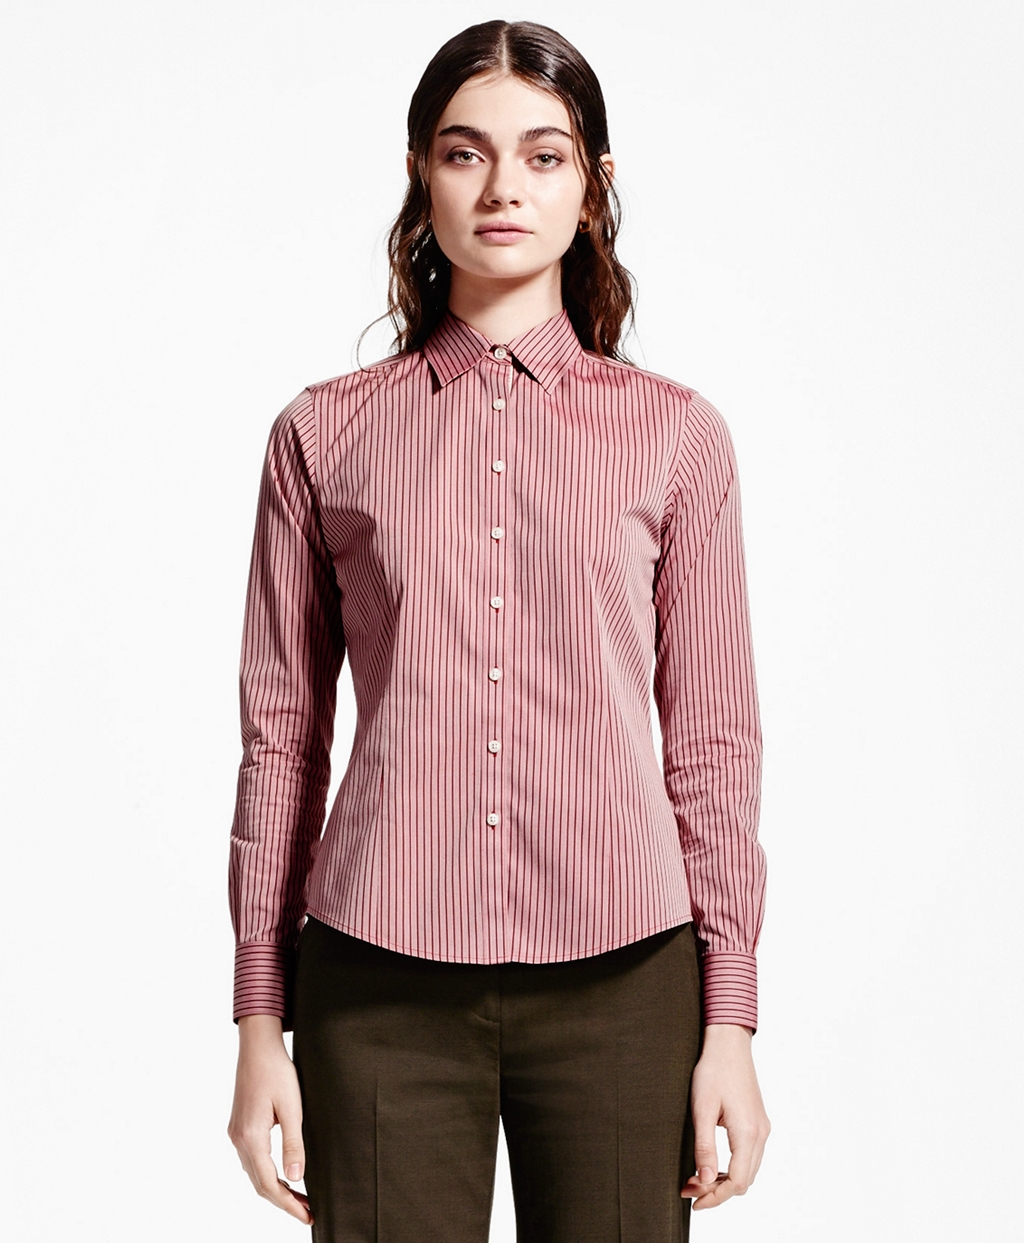 Brooks brothers petite non iron fitted stripe dress shirt for Brooks brothers non iron shirts review